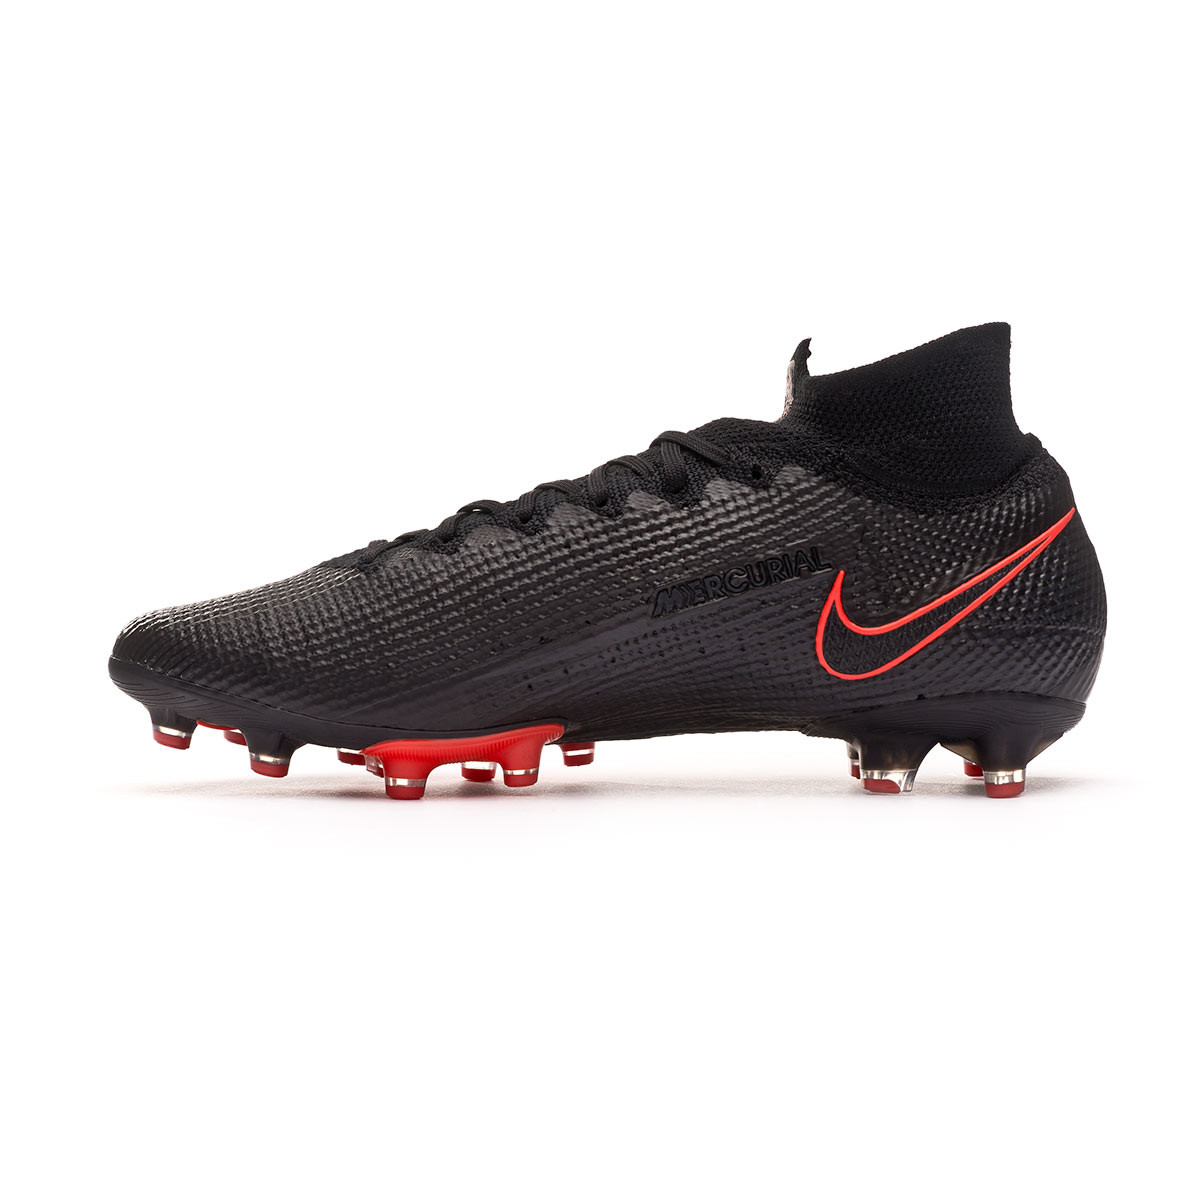 Factibilidad Un pan tarde  Football Boots Nike Mercurial Superfly VII Elite AG-PRO Black-Dark smoke  grey-Chile red - Football store Fútbol Emotion